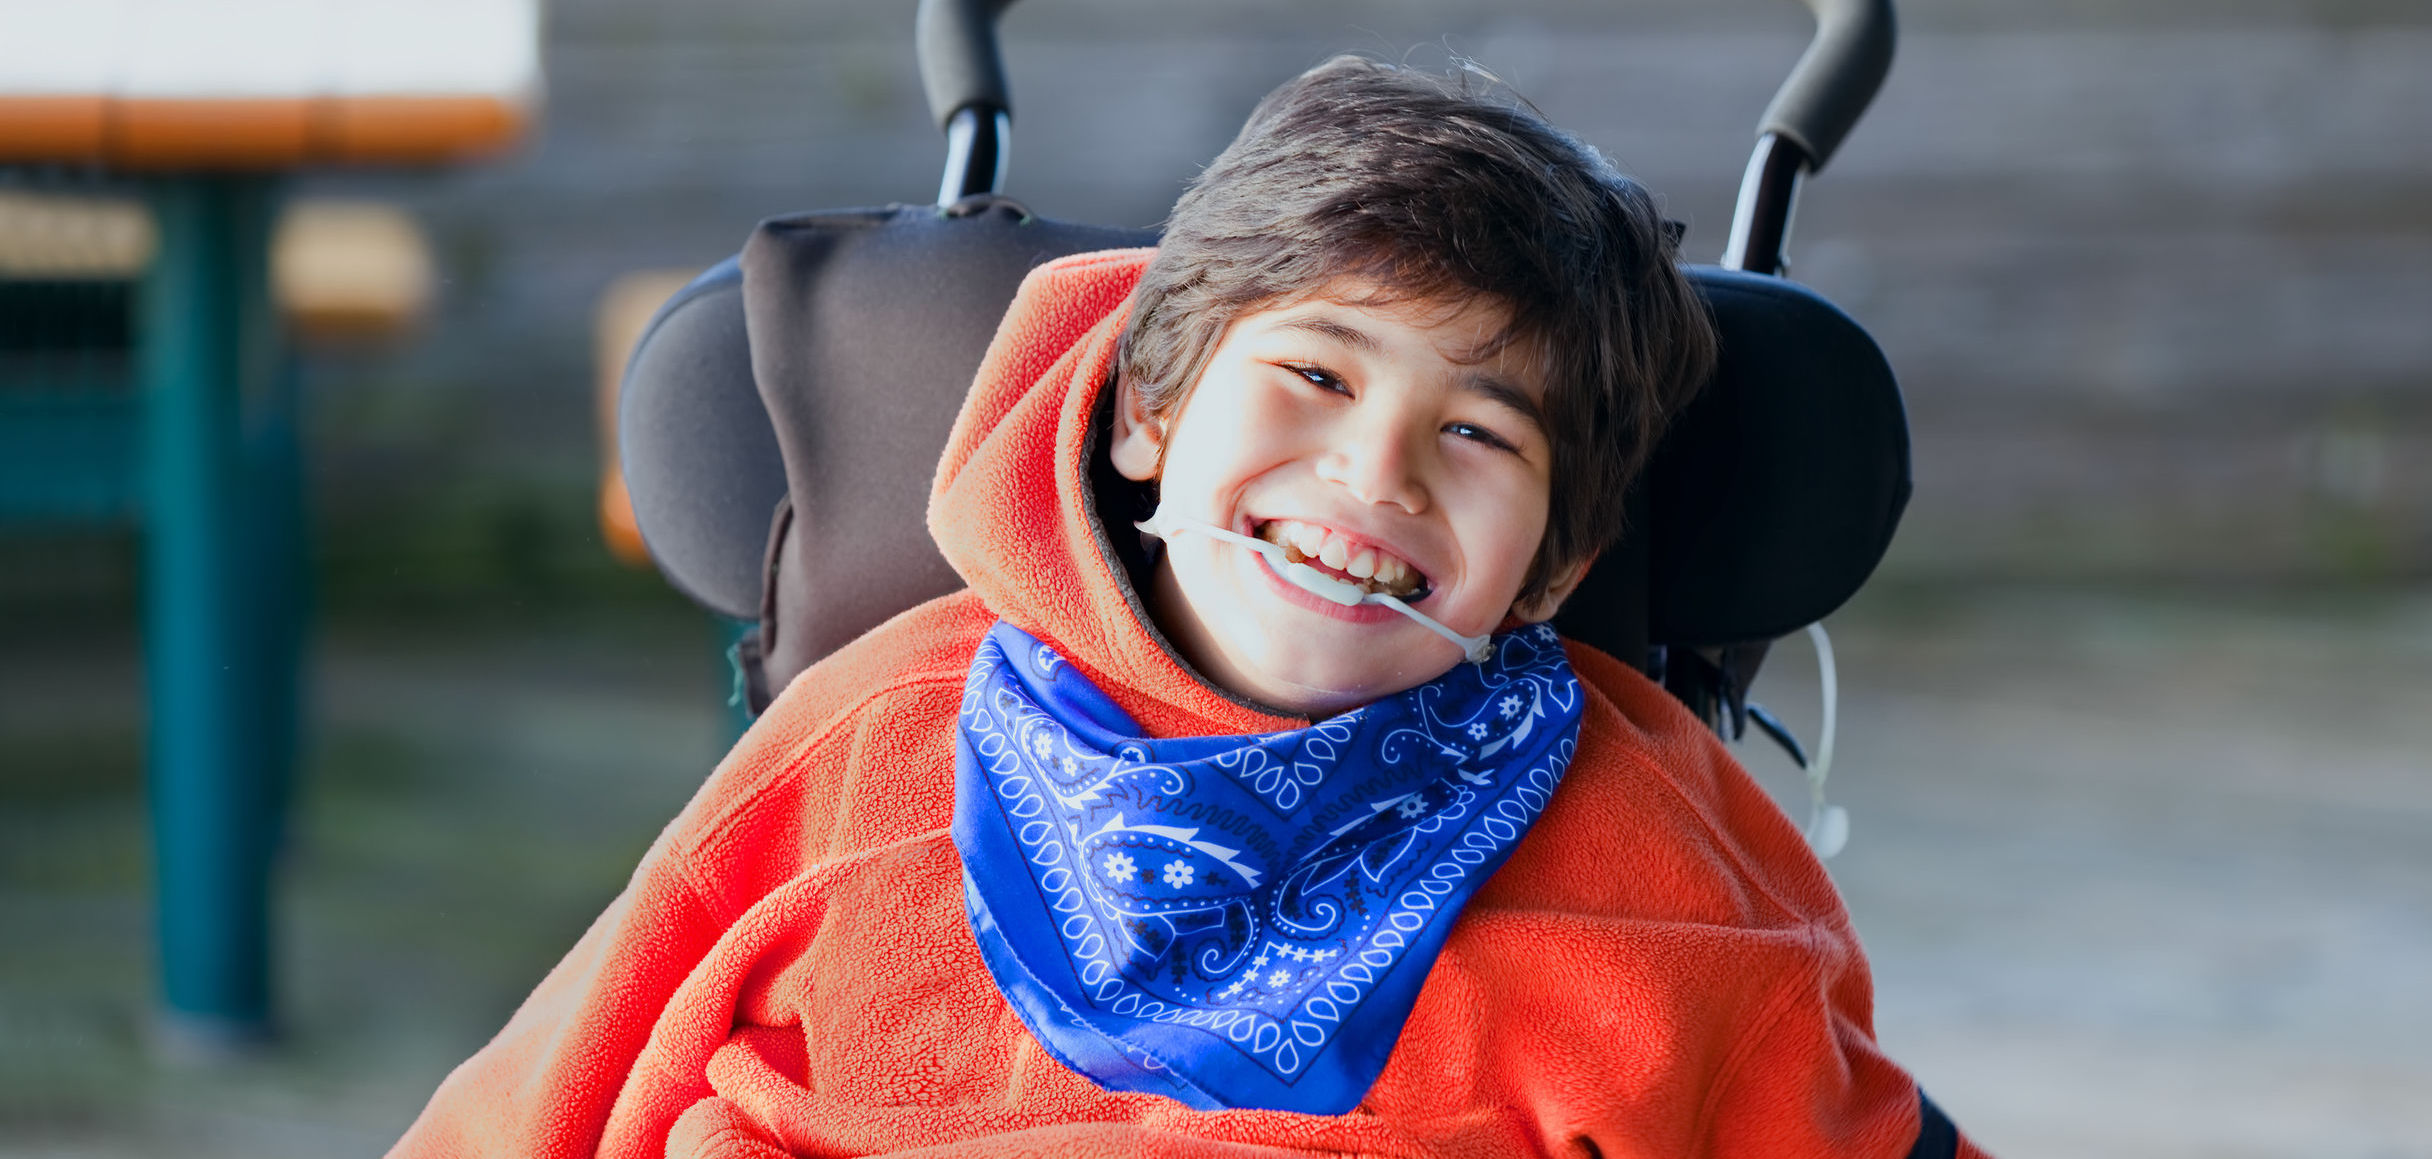 boy smiling in wheelchair outdoors